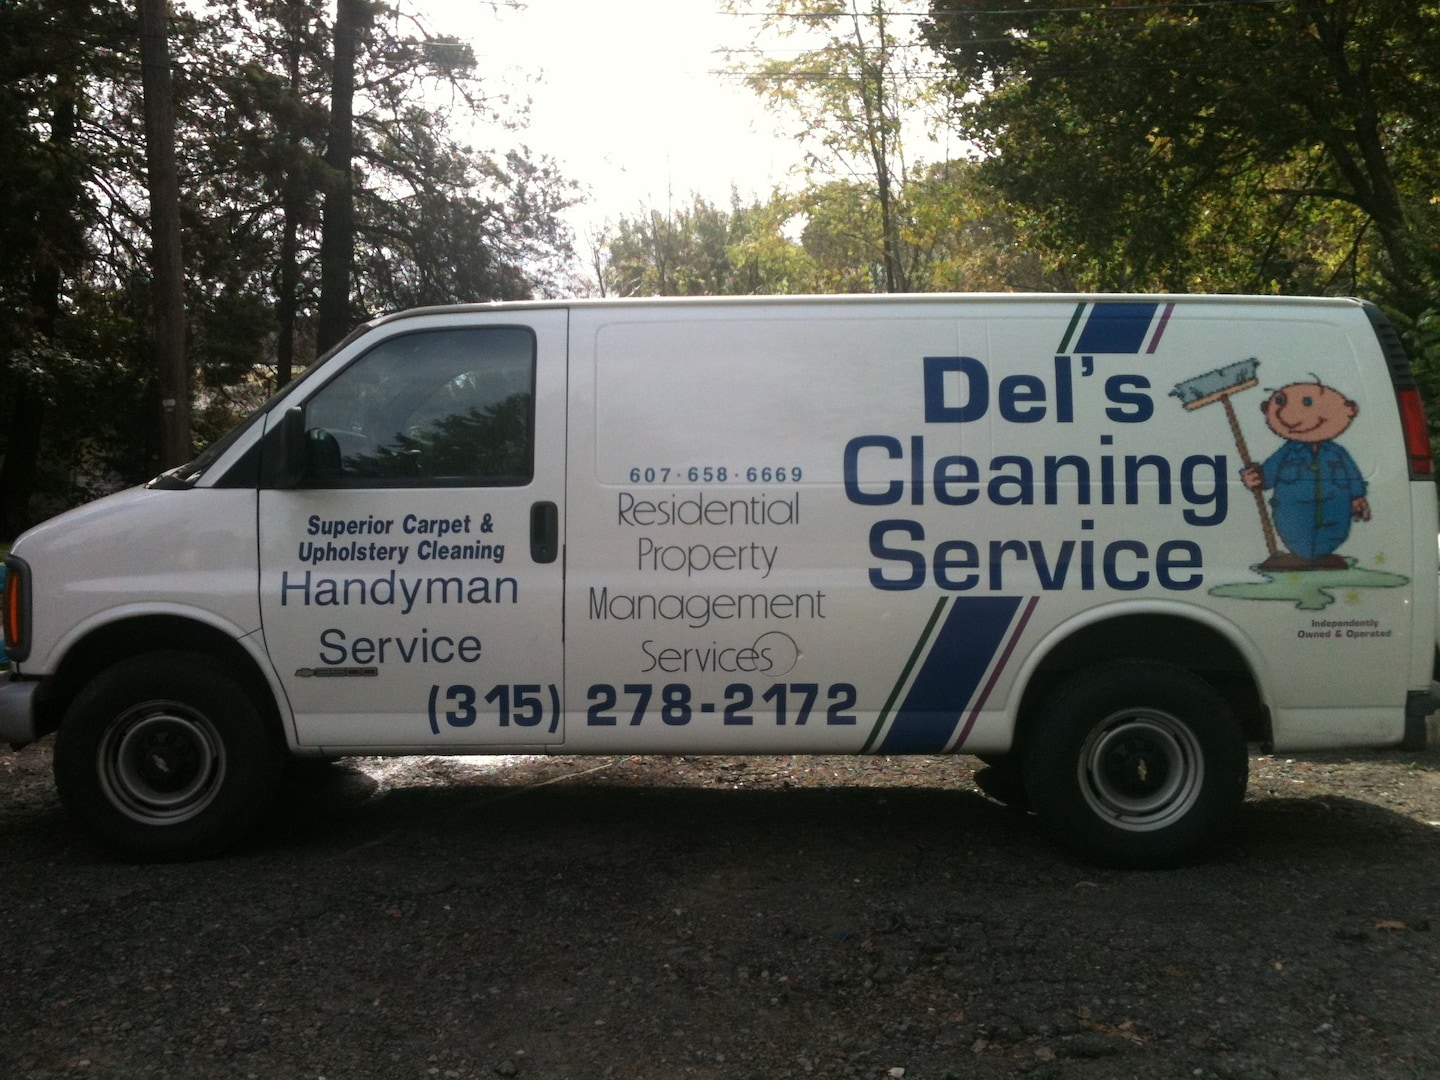 Dels Cleaning & Handyman Service